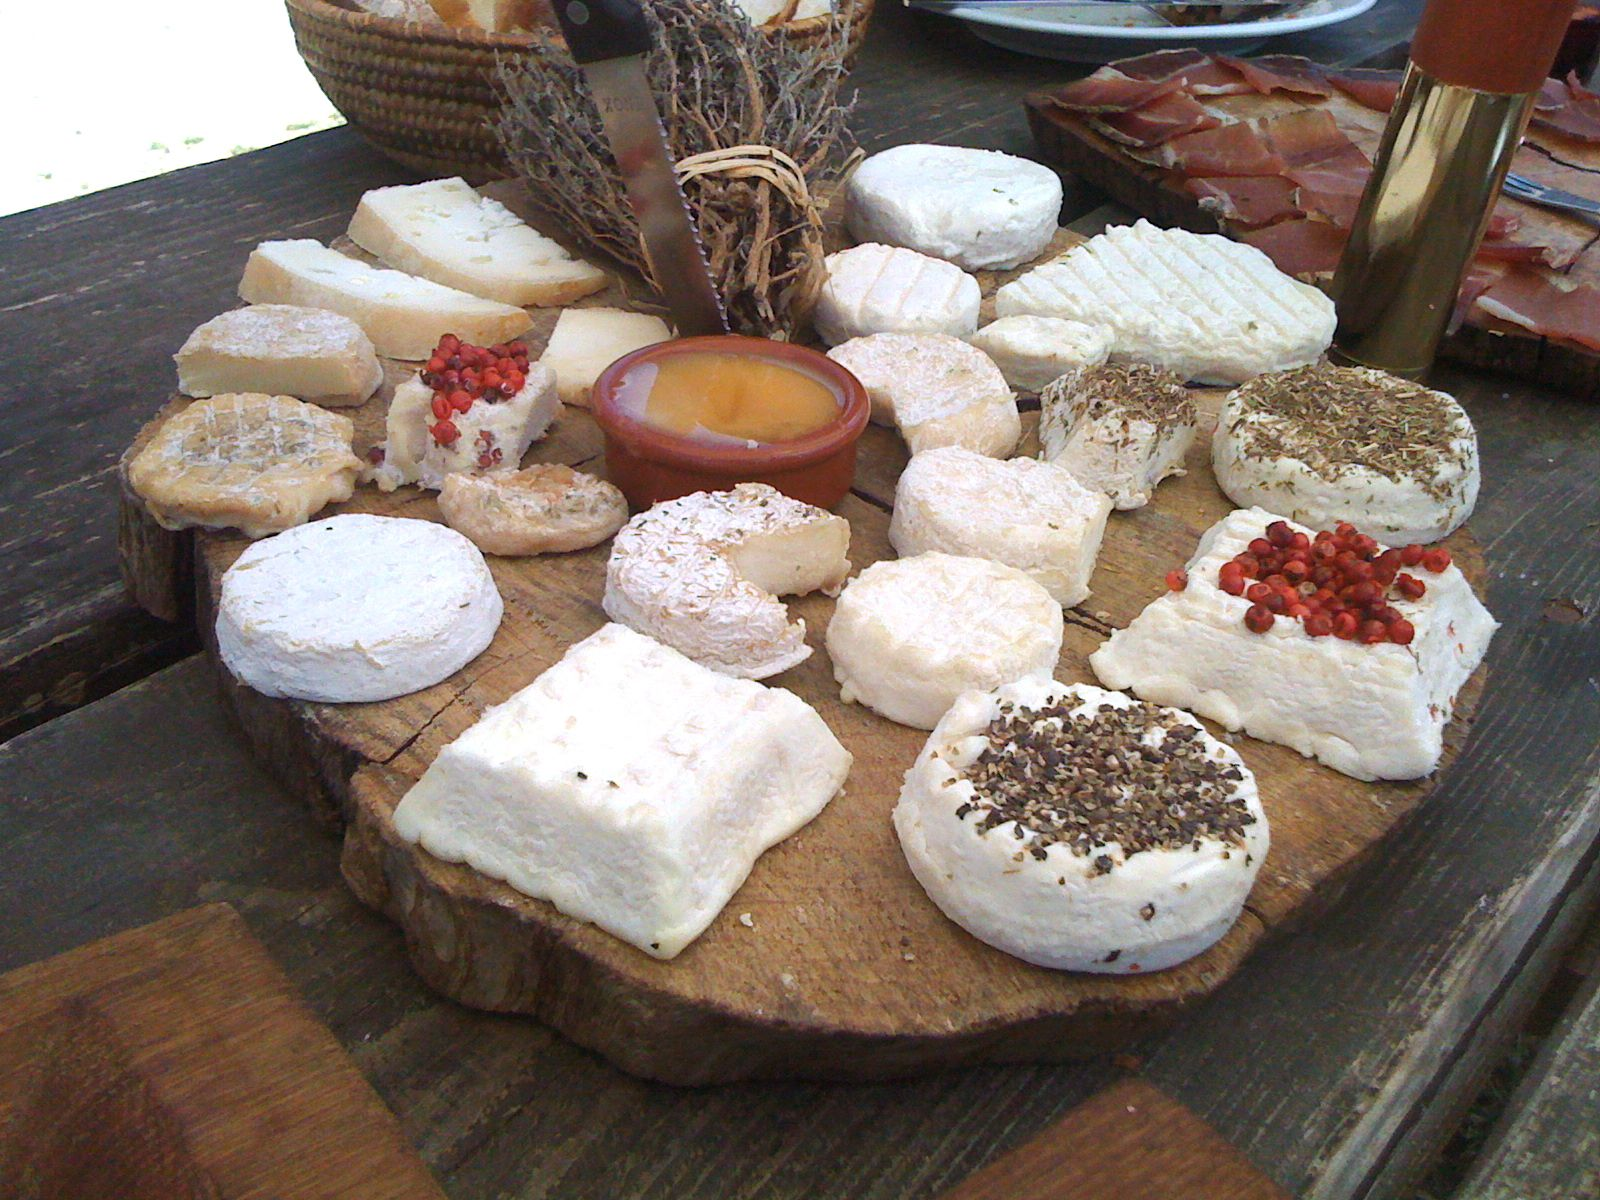 From fresh to aged, the goat cheeses produced and served at Le Castelas, a goat farm atop the Luberon Mountains.